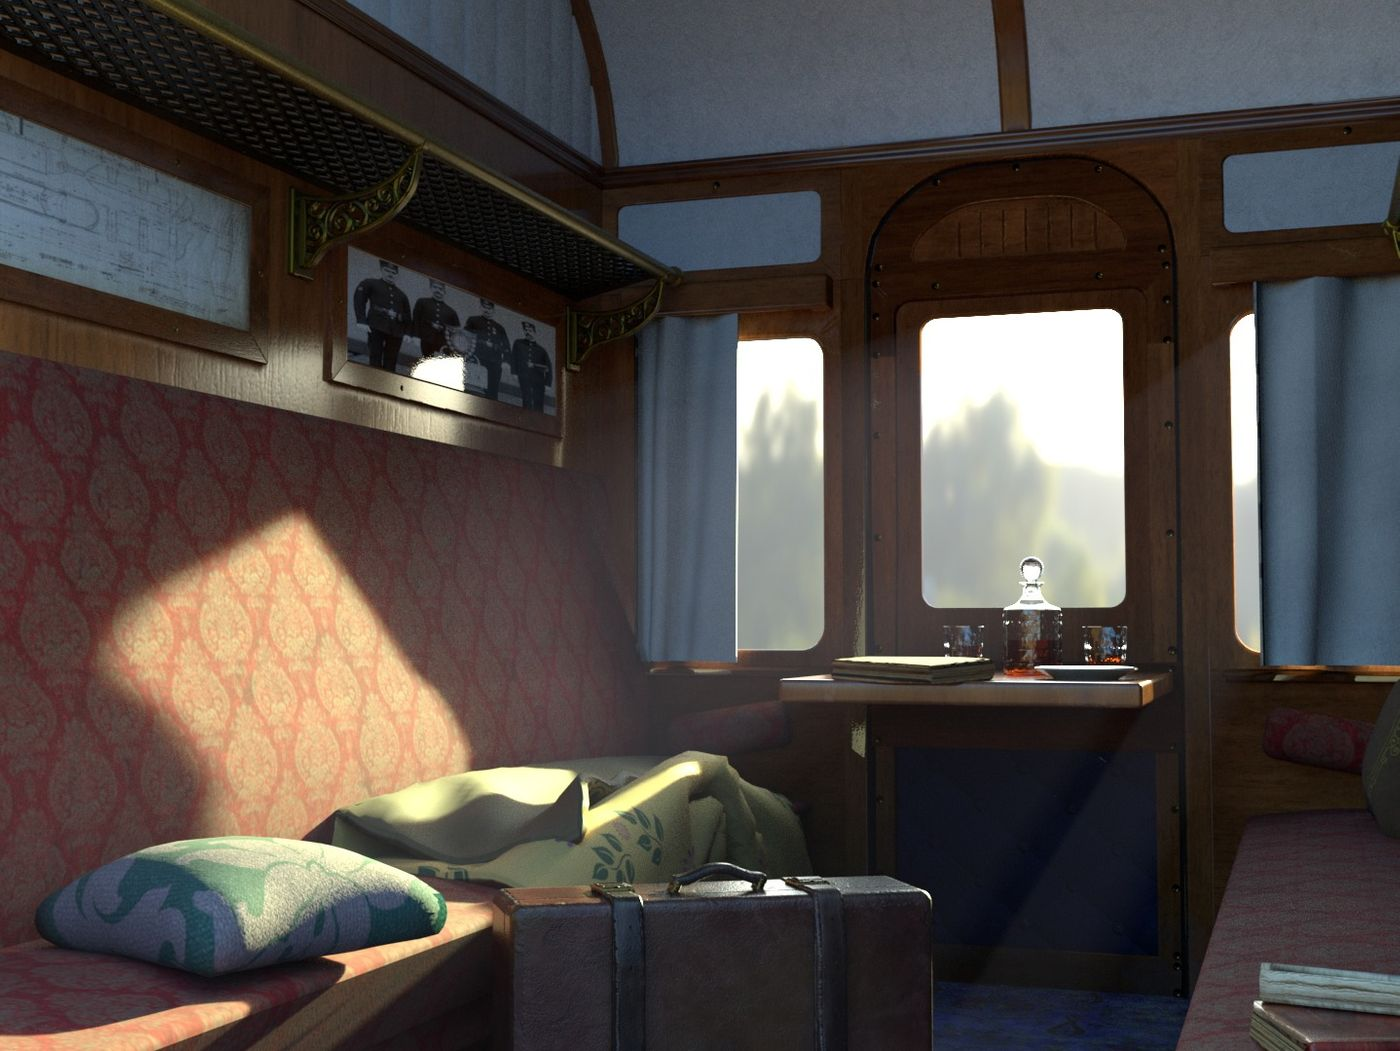 the railway passenger carriage.